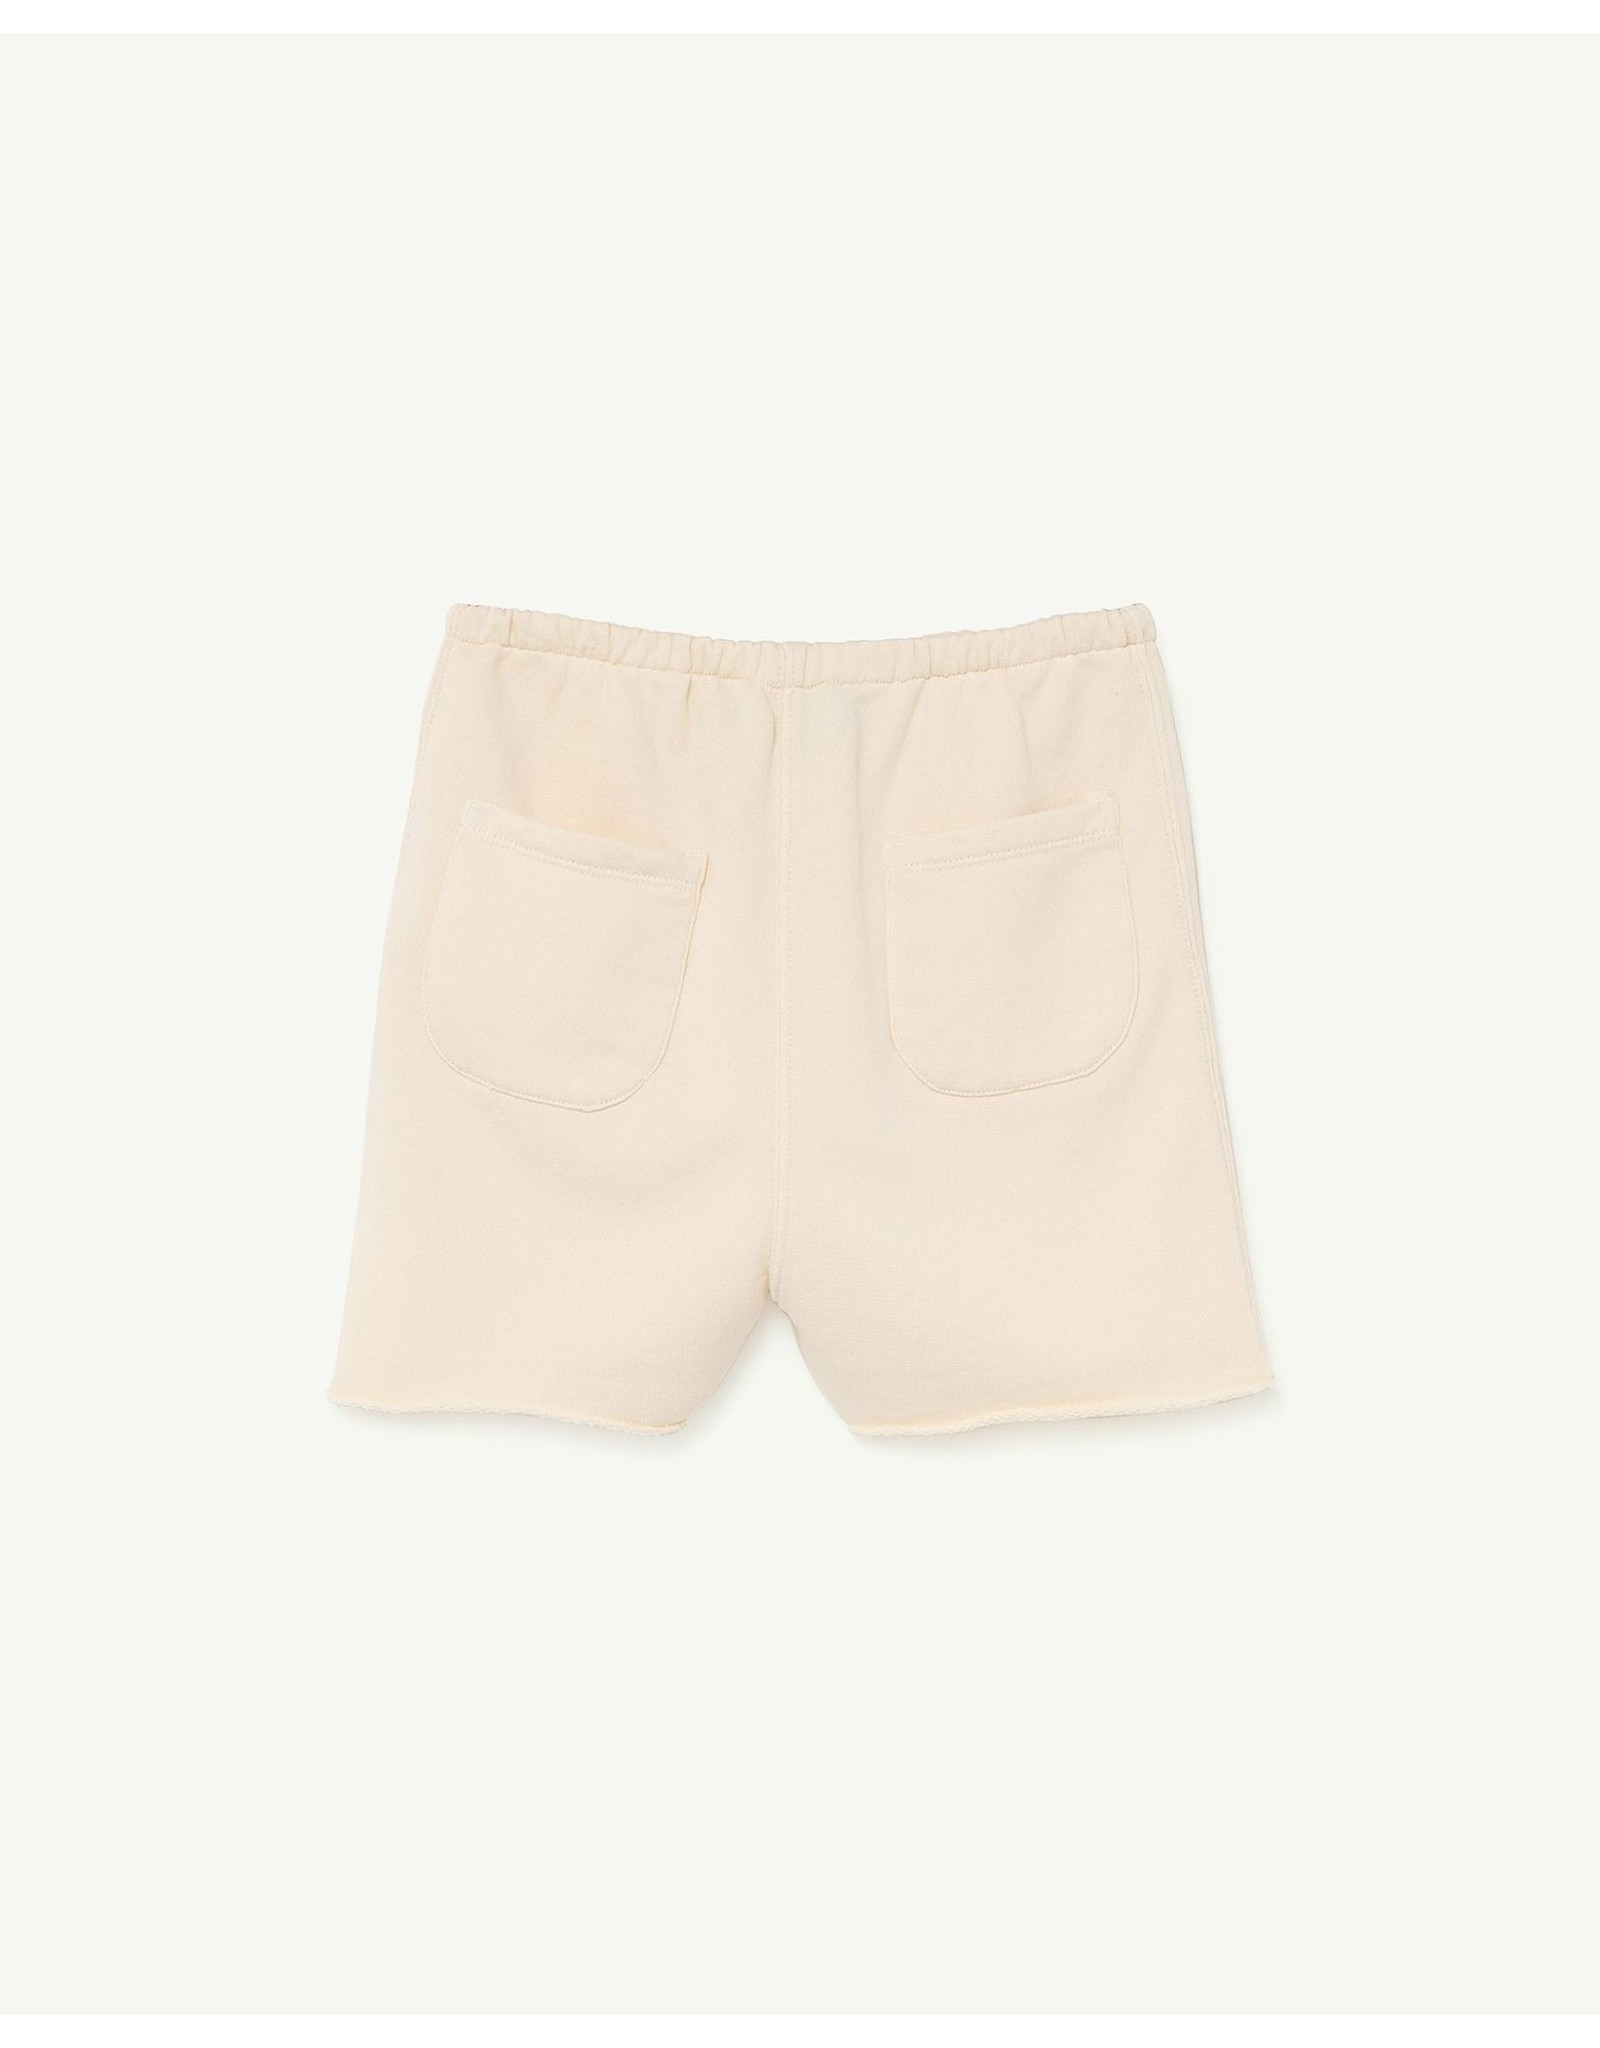 TAO PS21 008221BL Hedgehog kids trousers white